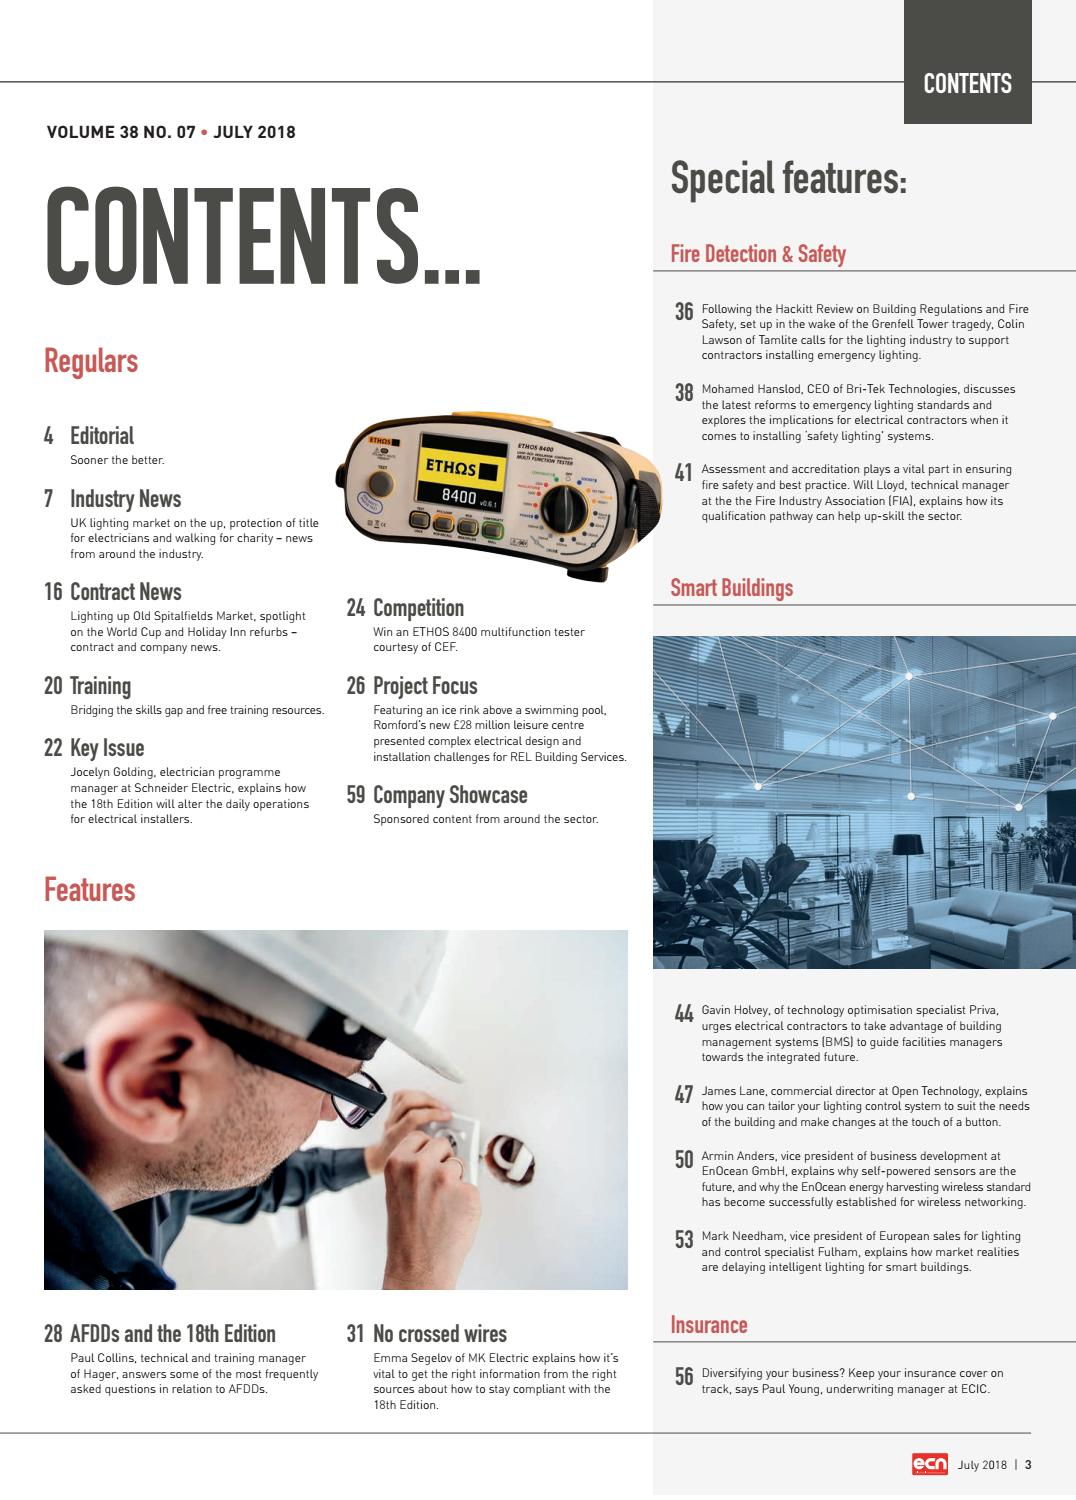 Ecn July 2018 By All Things Media Issuu Emergency Lighting 6 Best Images Of Wiring